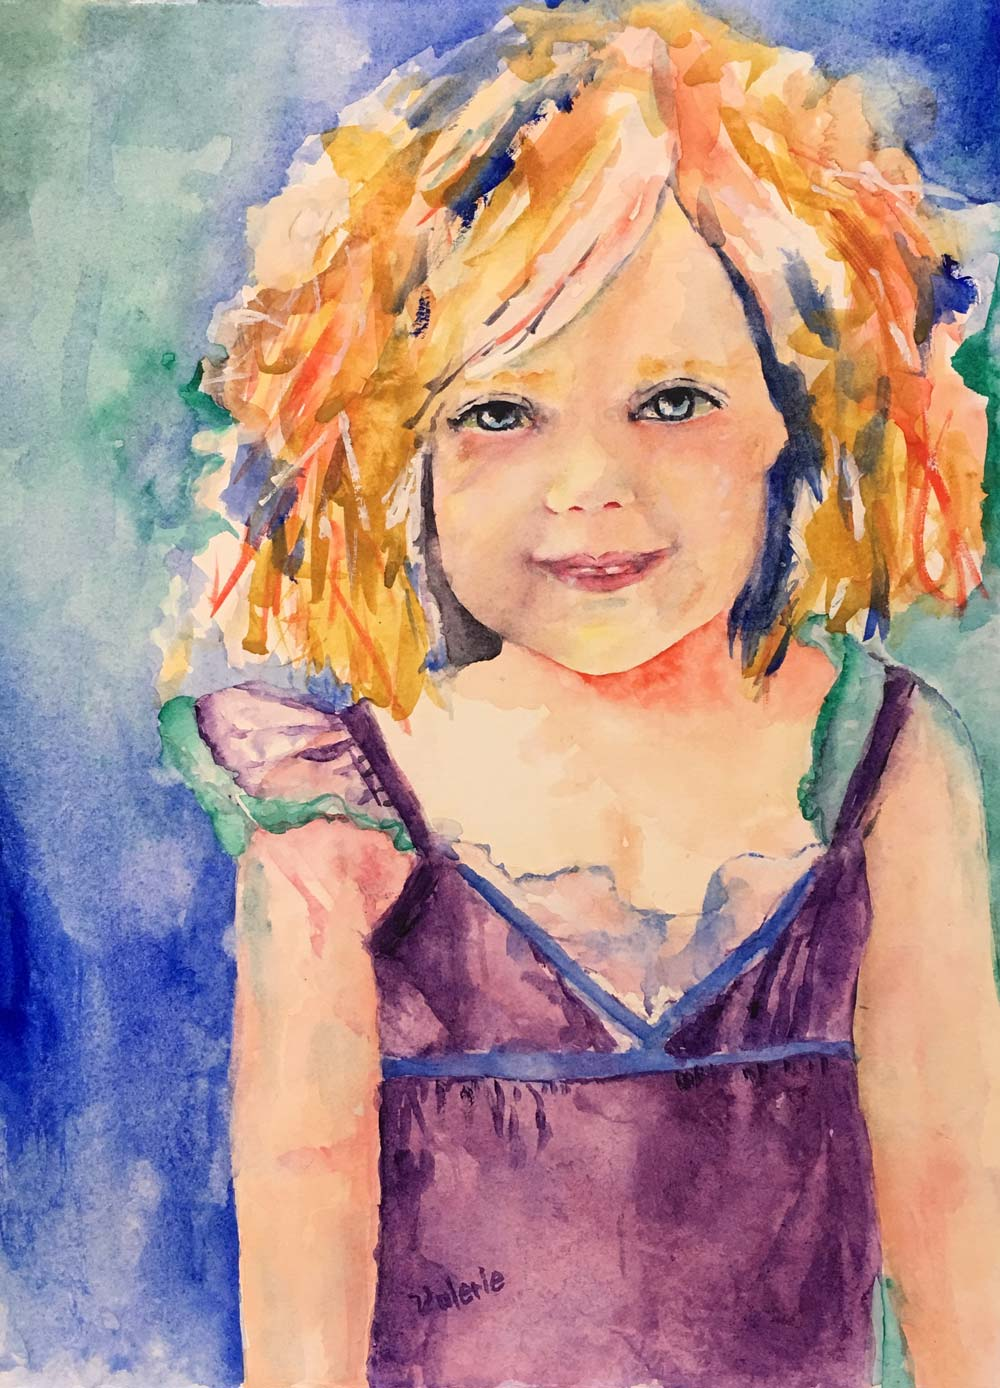 "A Young Girl, Watercolor, 15"" x 11"""